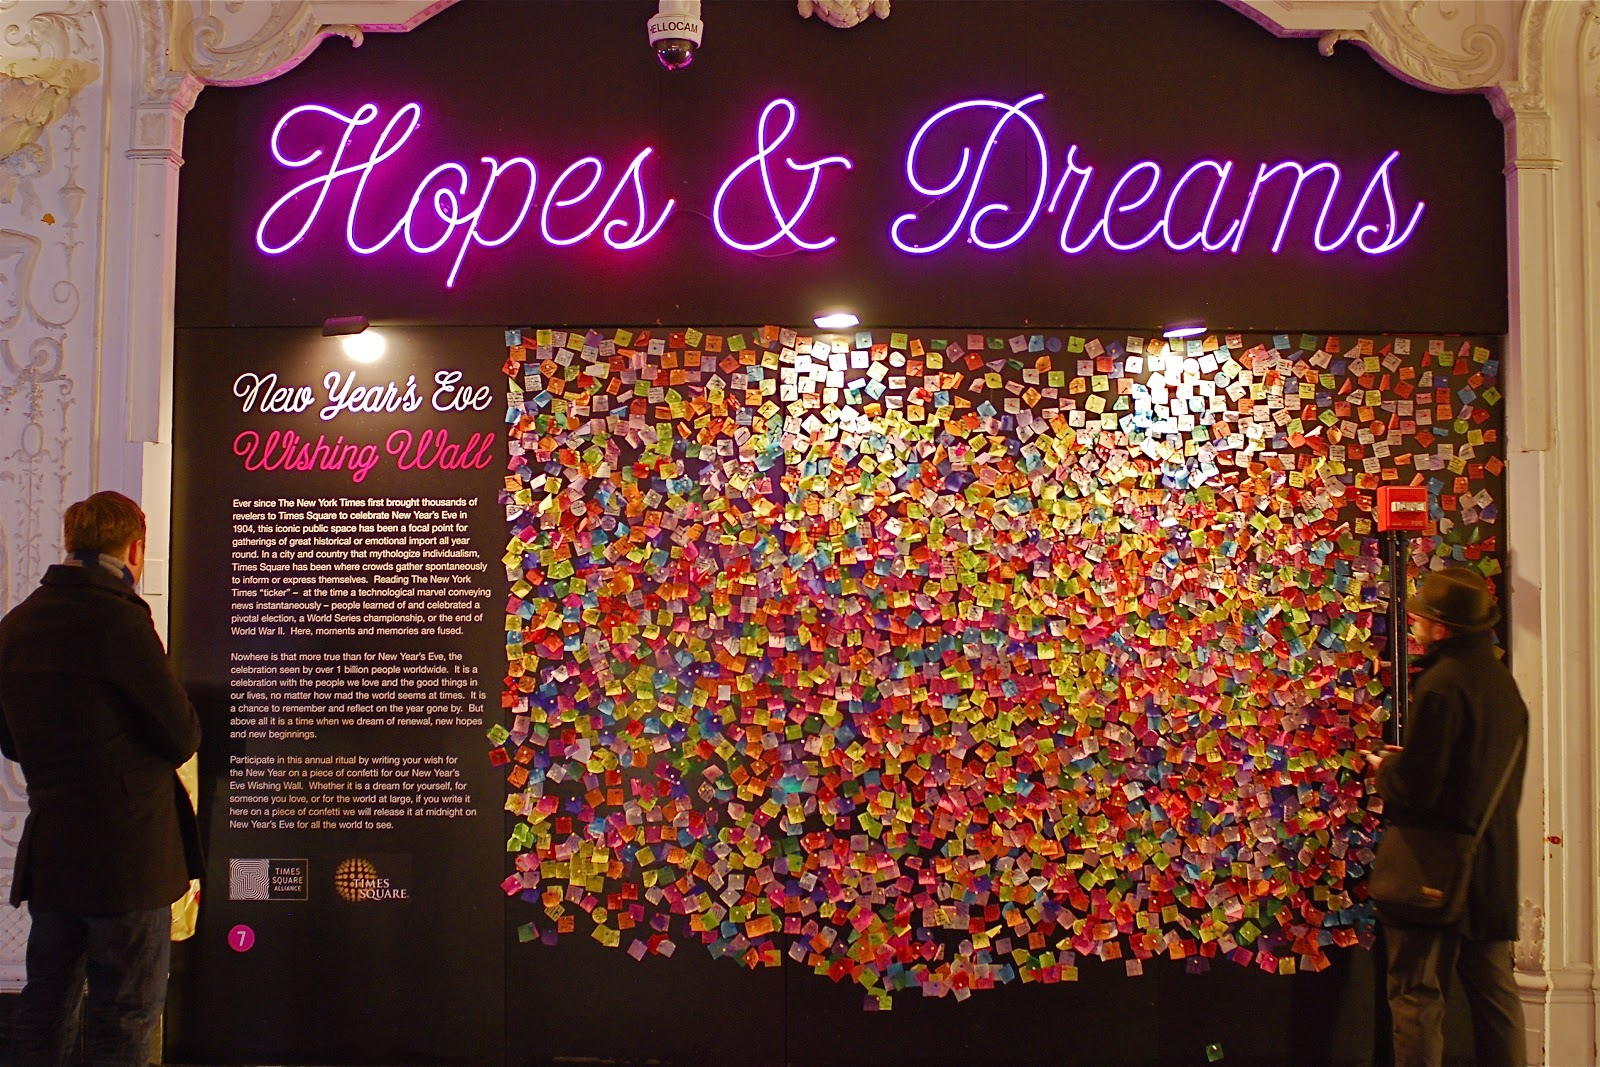 NYC ♥ NYC: World's New Year's Eve Wishing Wall and the ...